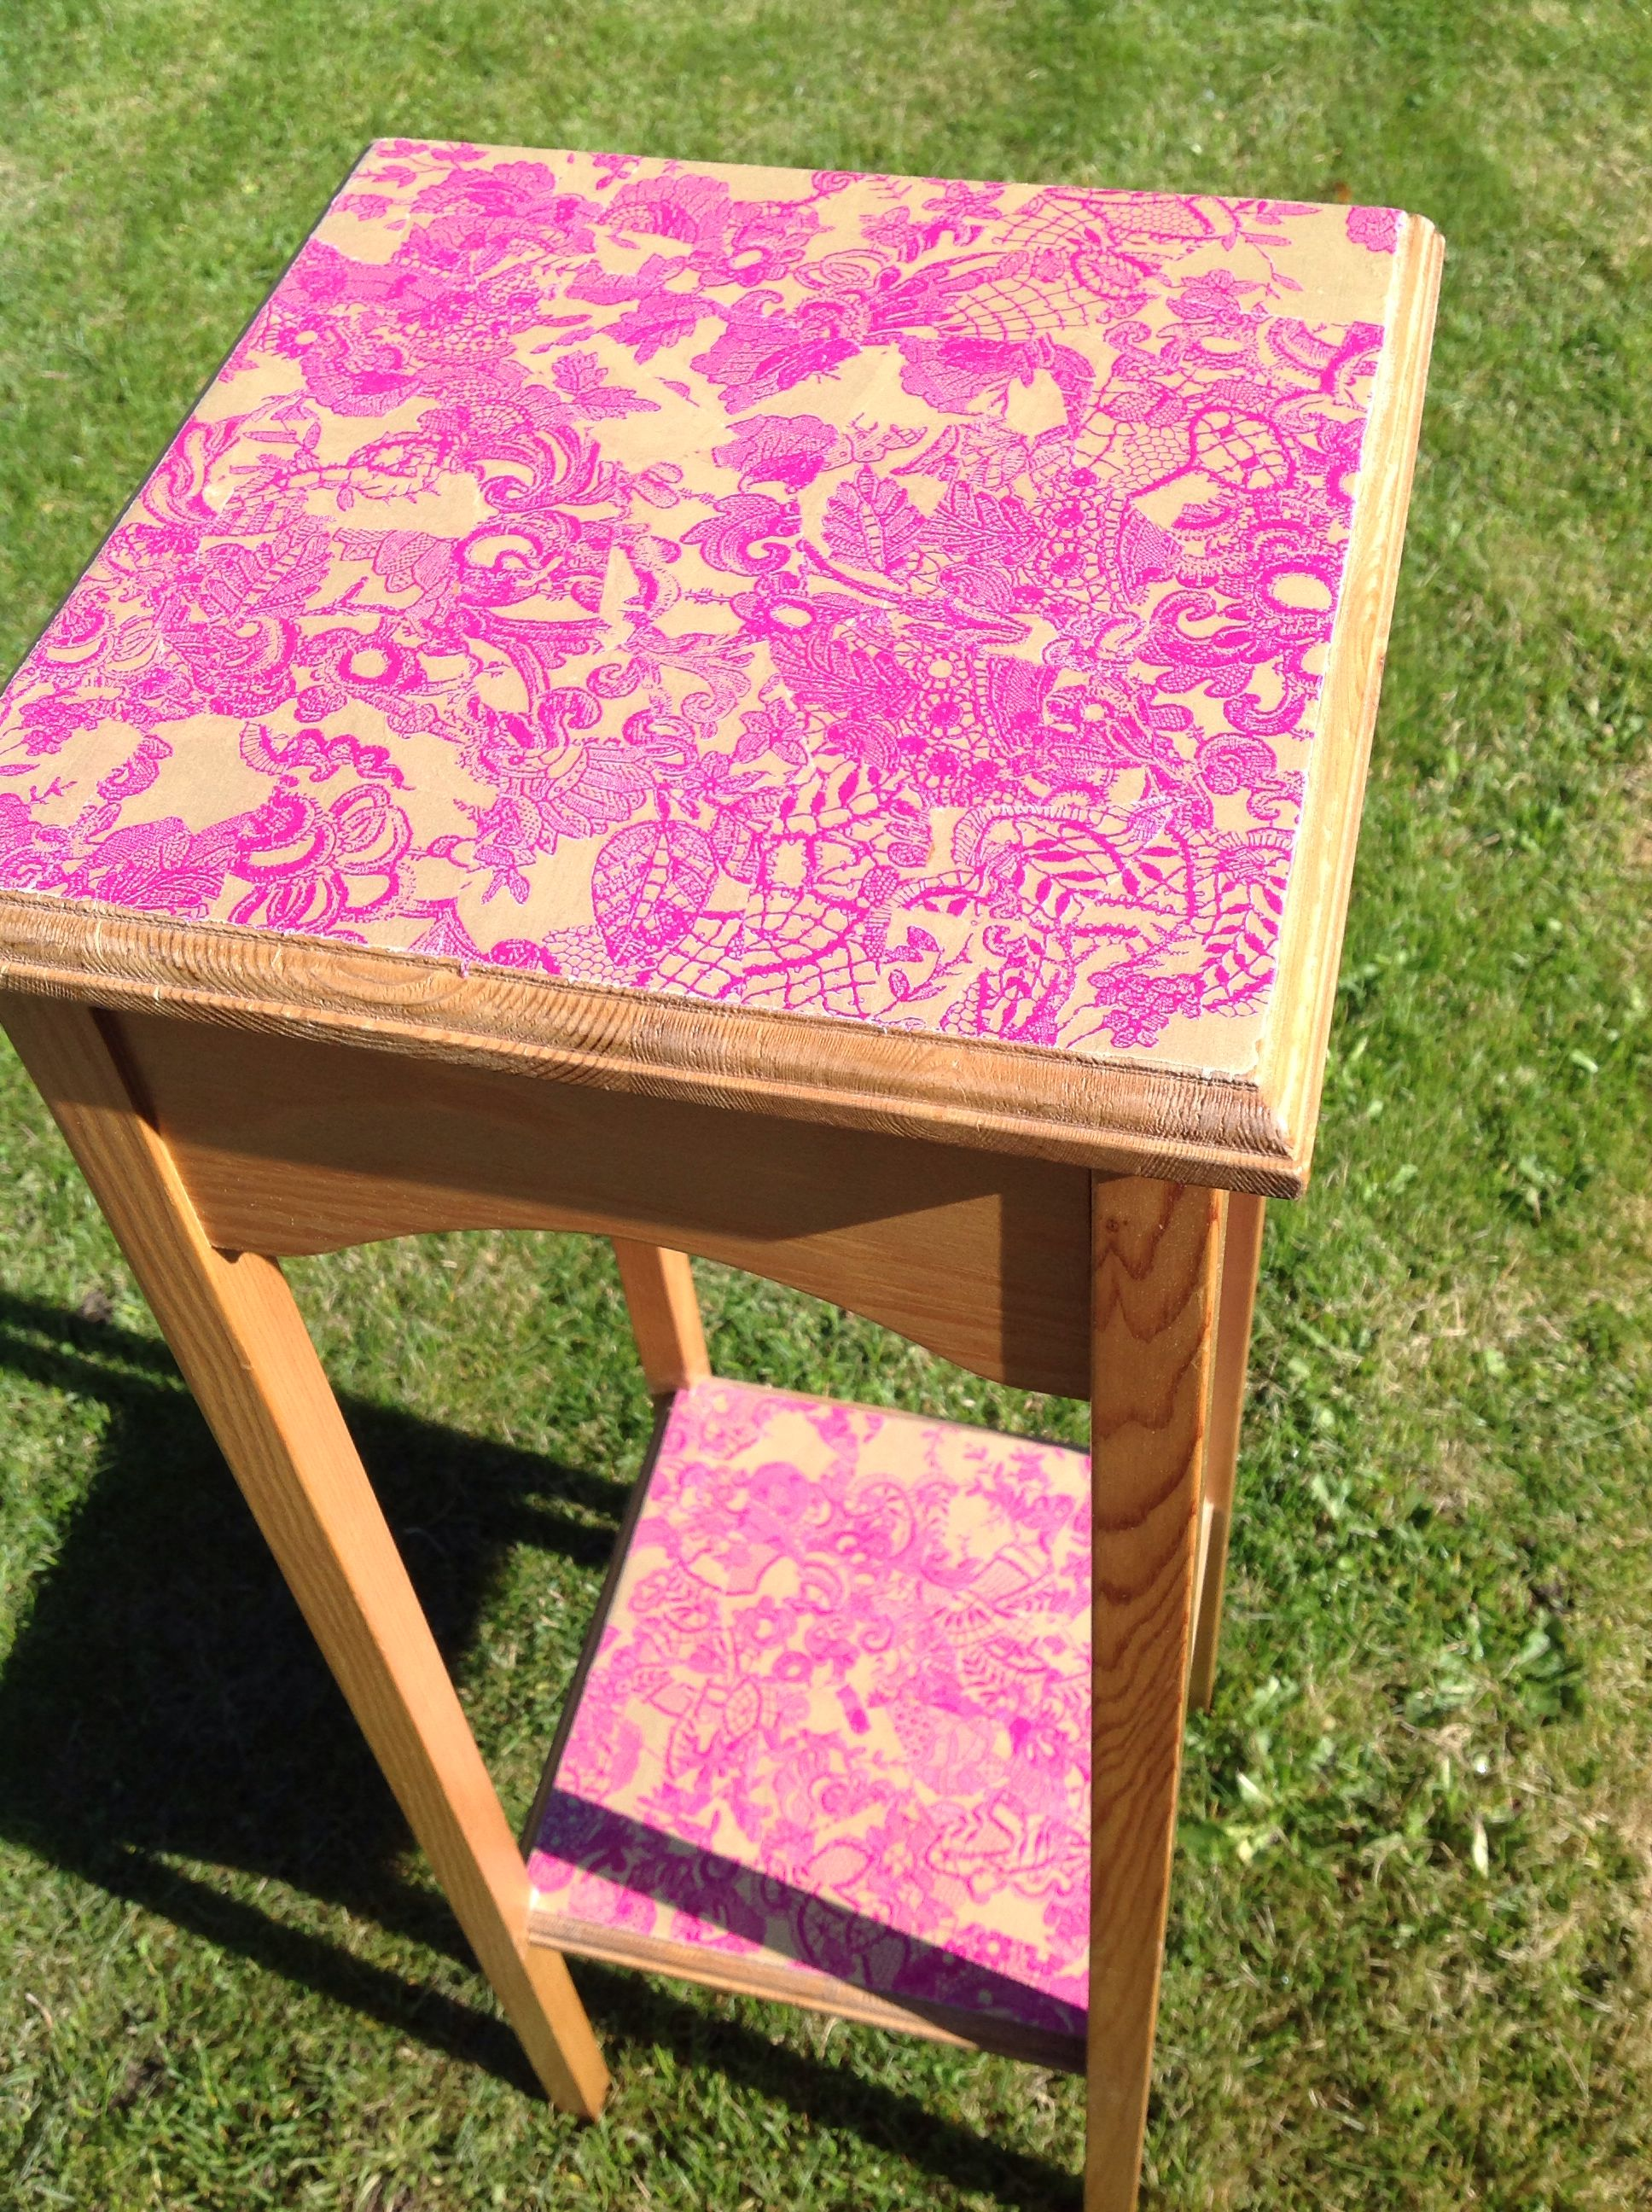 Upcycled furniture decopatch spullies handmade by me pinterest upcycled furniture - Upcycling ideas for furniture ...